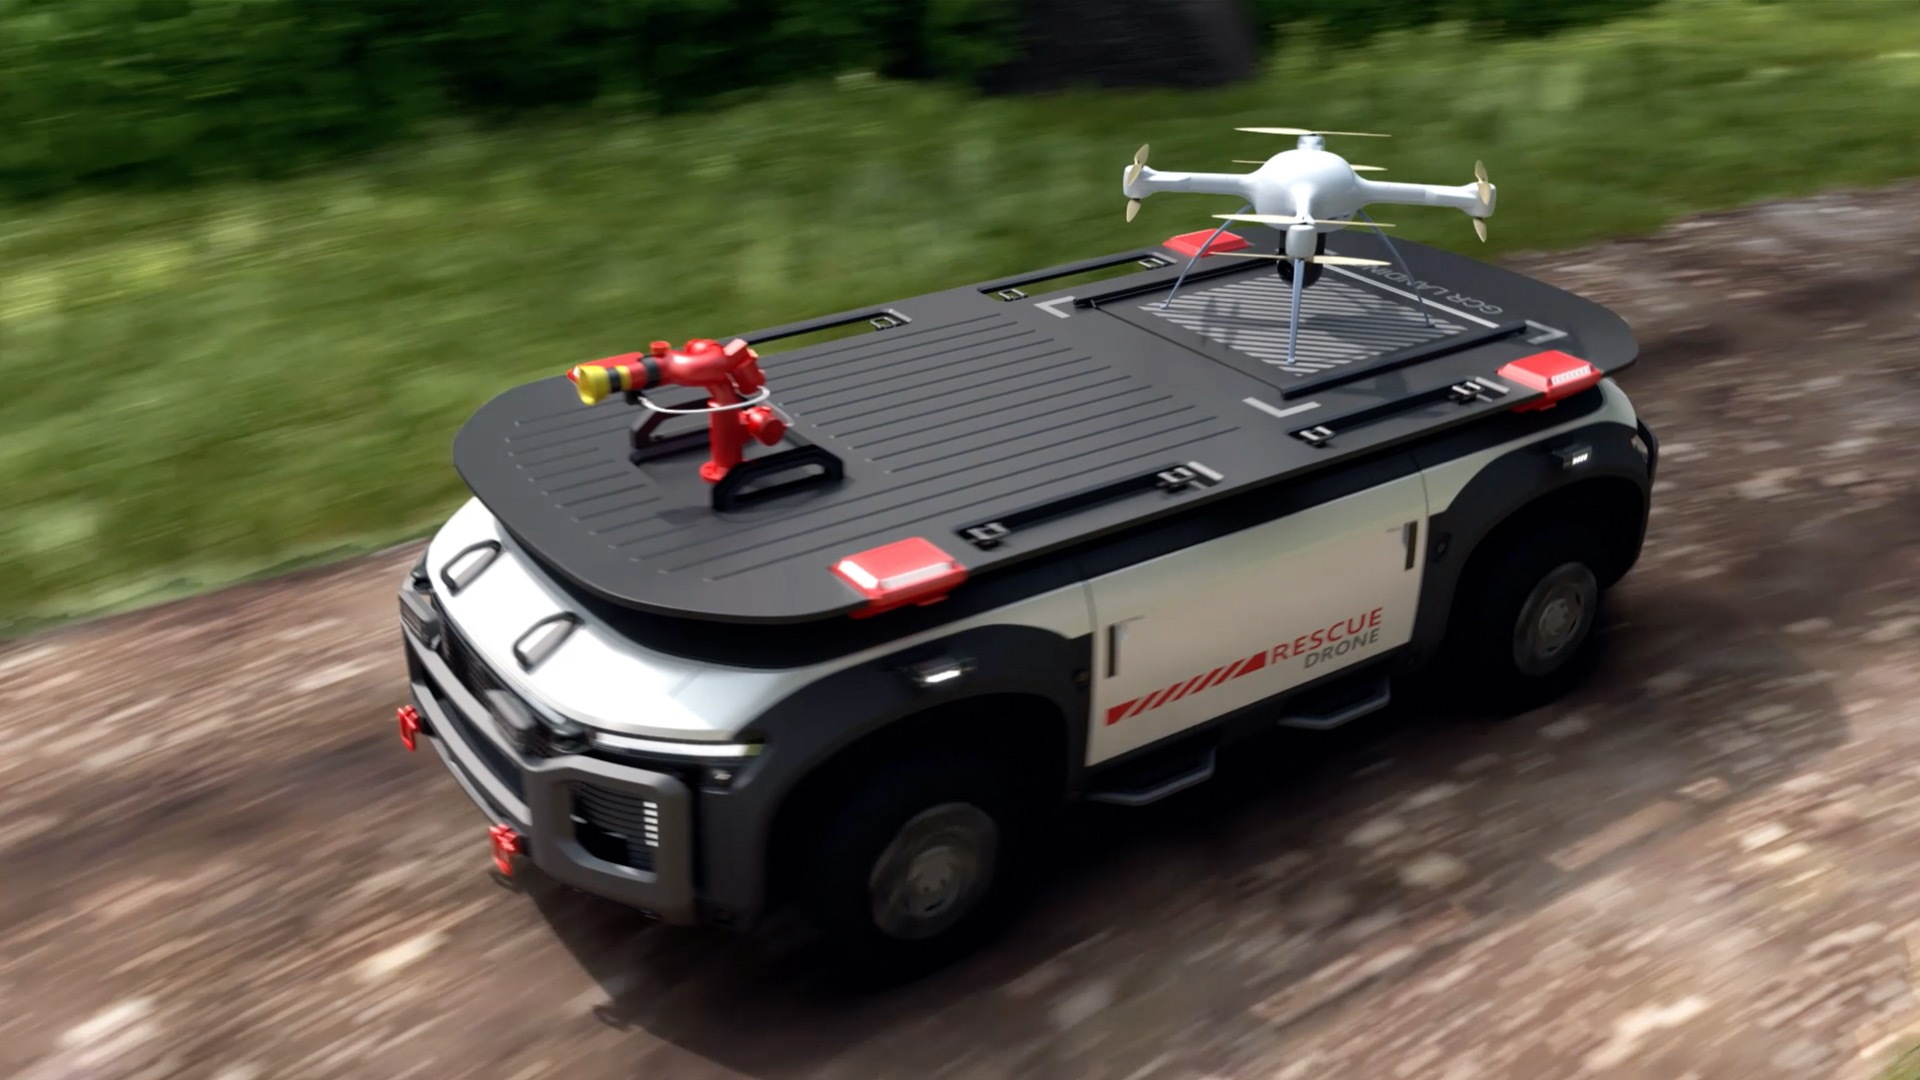 Hyundai fuel cell rescue vehicle